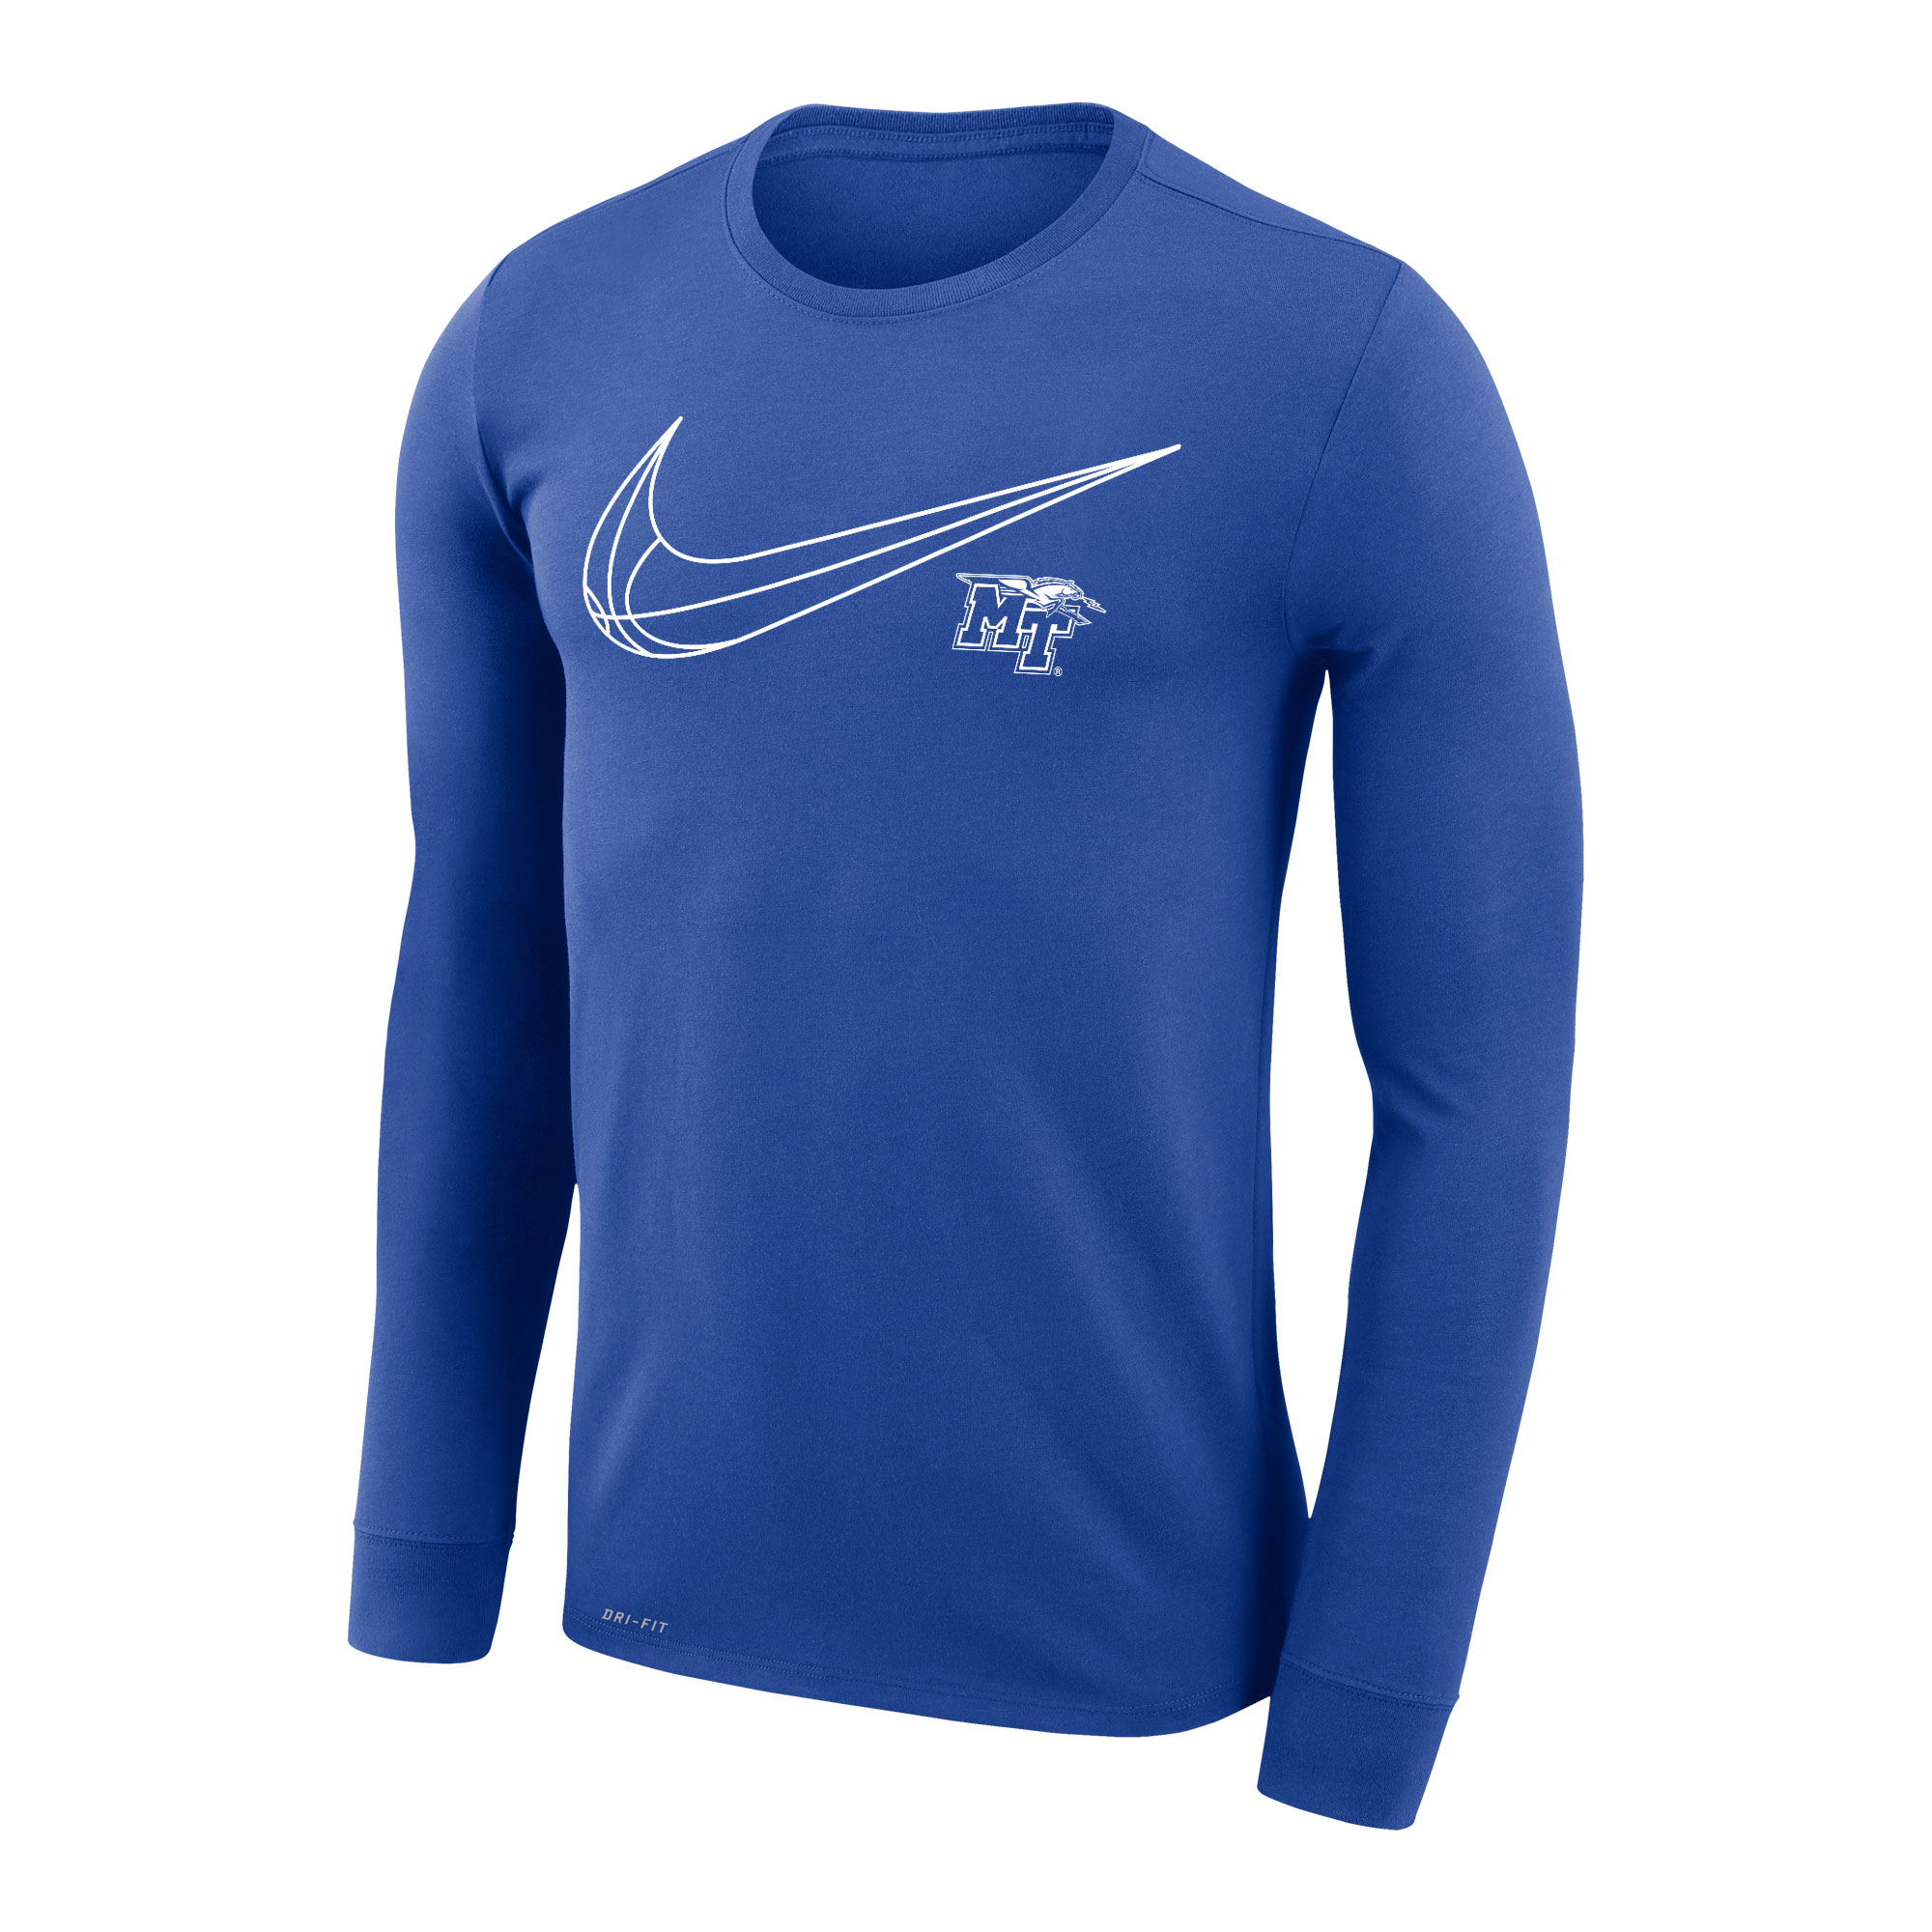 MT Logo w/ Lightning Swish Nike® Dri-Fit Legend 2.0 Long Sleeve Shirt